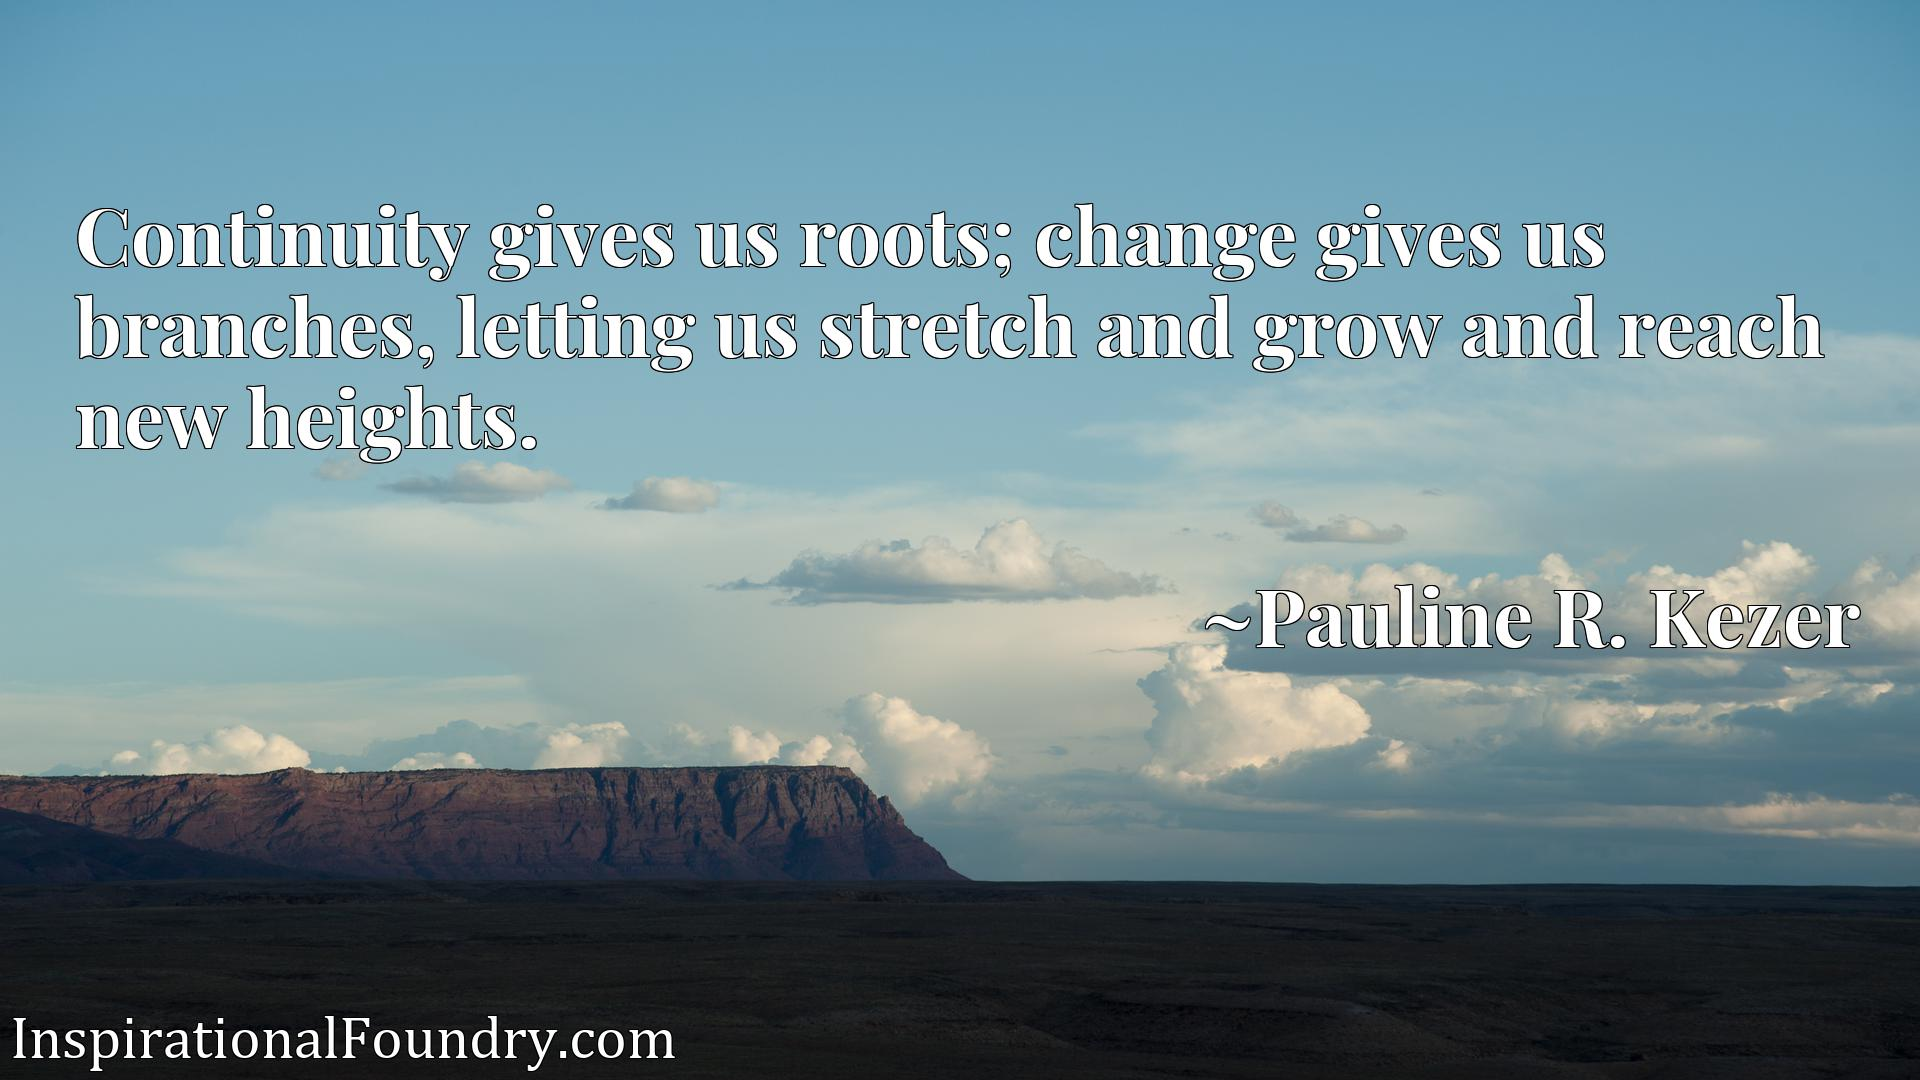 Continuity gives us roots; change gives us branches, letting us stretch and grow and reach new heights.